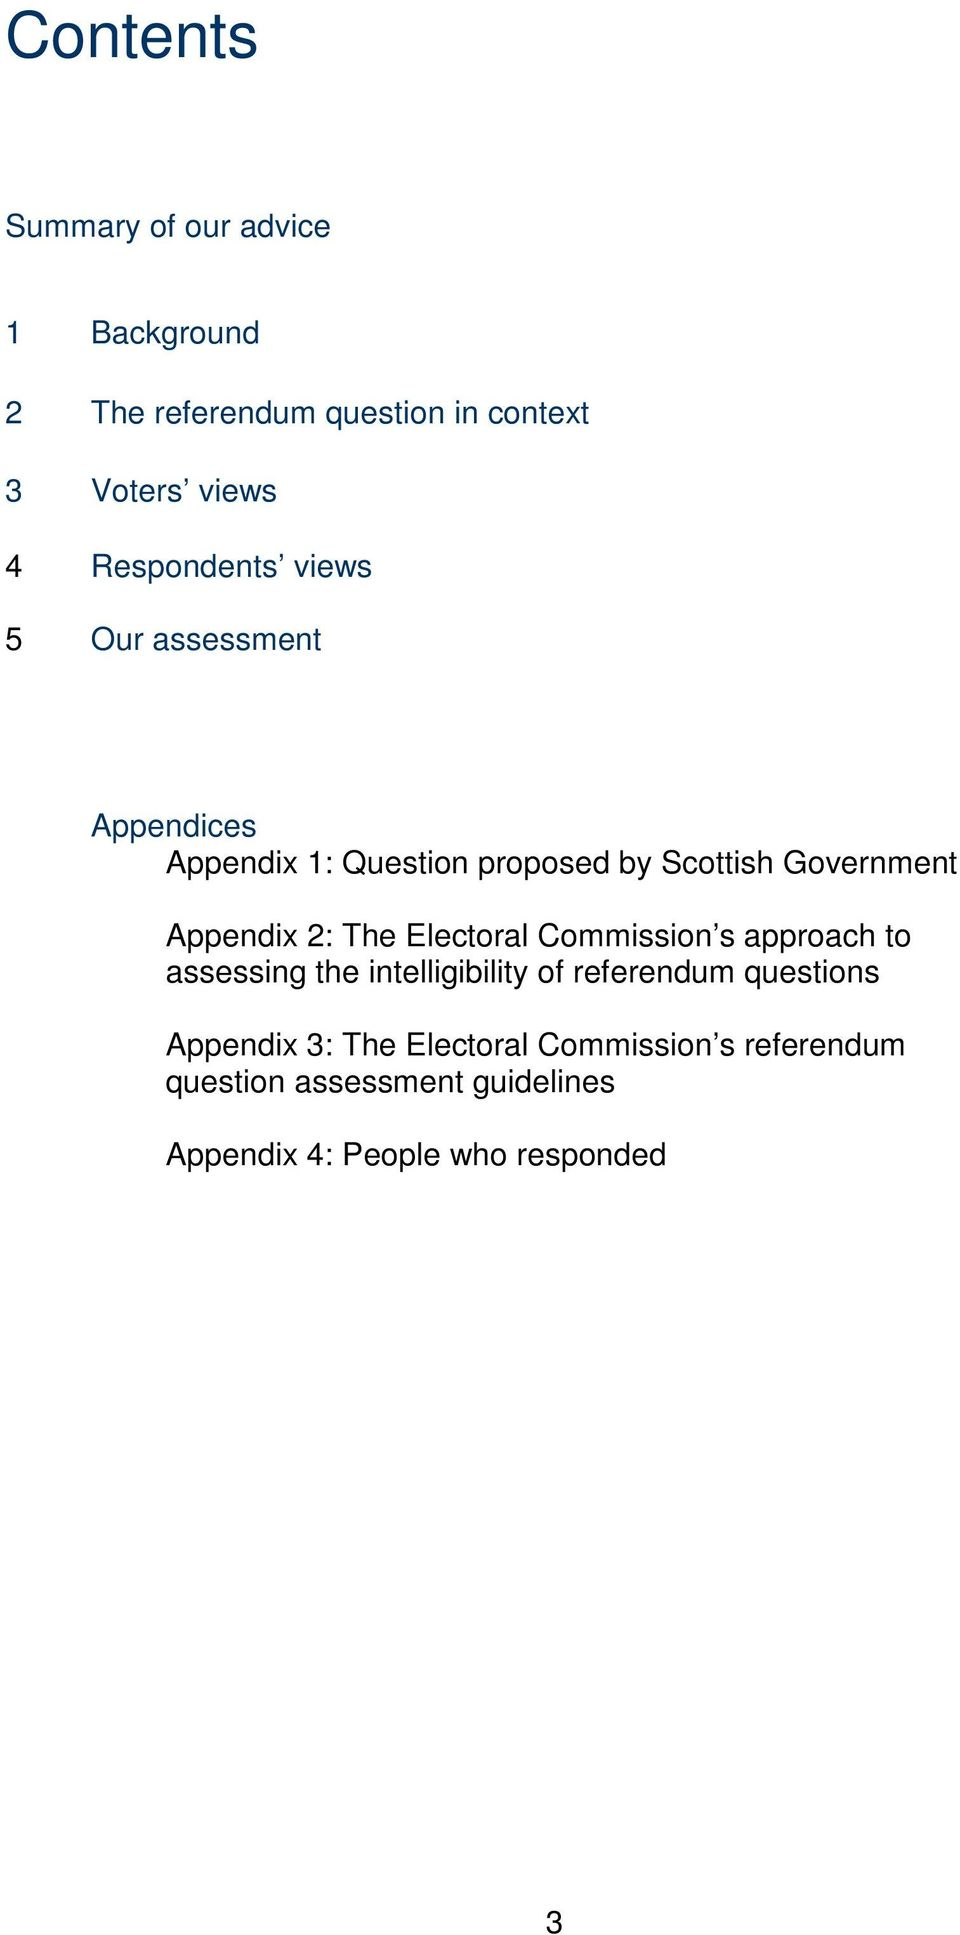 Appendix 2: The Electoral Commission s approach to assessing the intelligibility of referendum questions